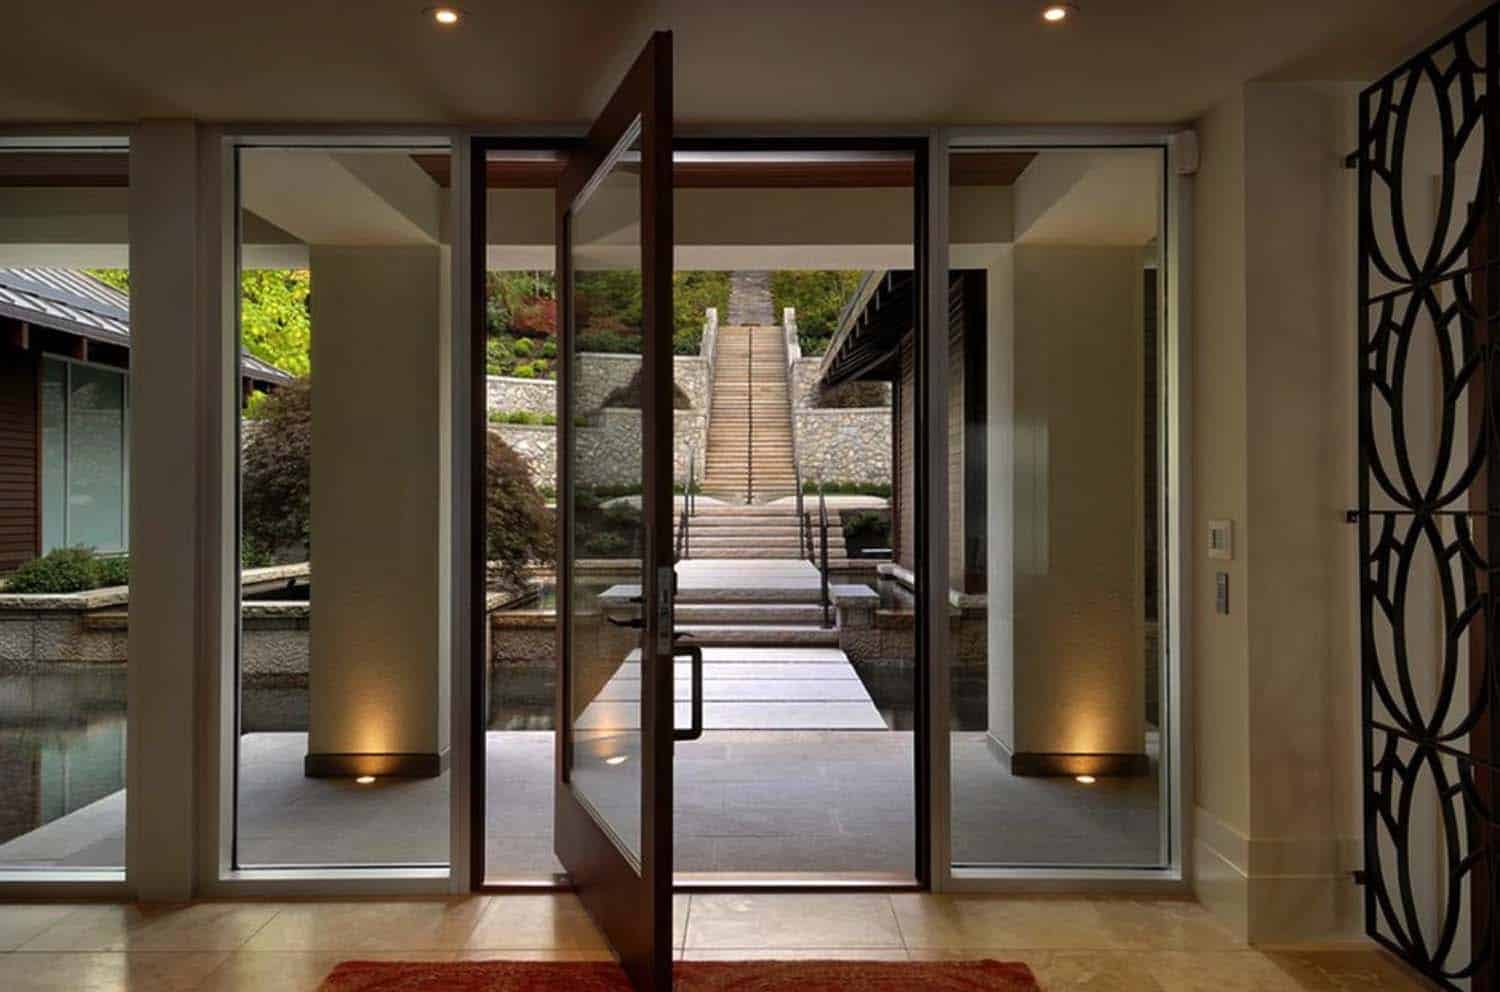 vancouver-island-residence-mckinley-burkart-architects-02-1-kindesign